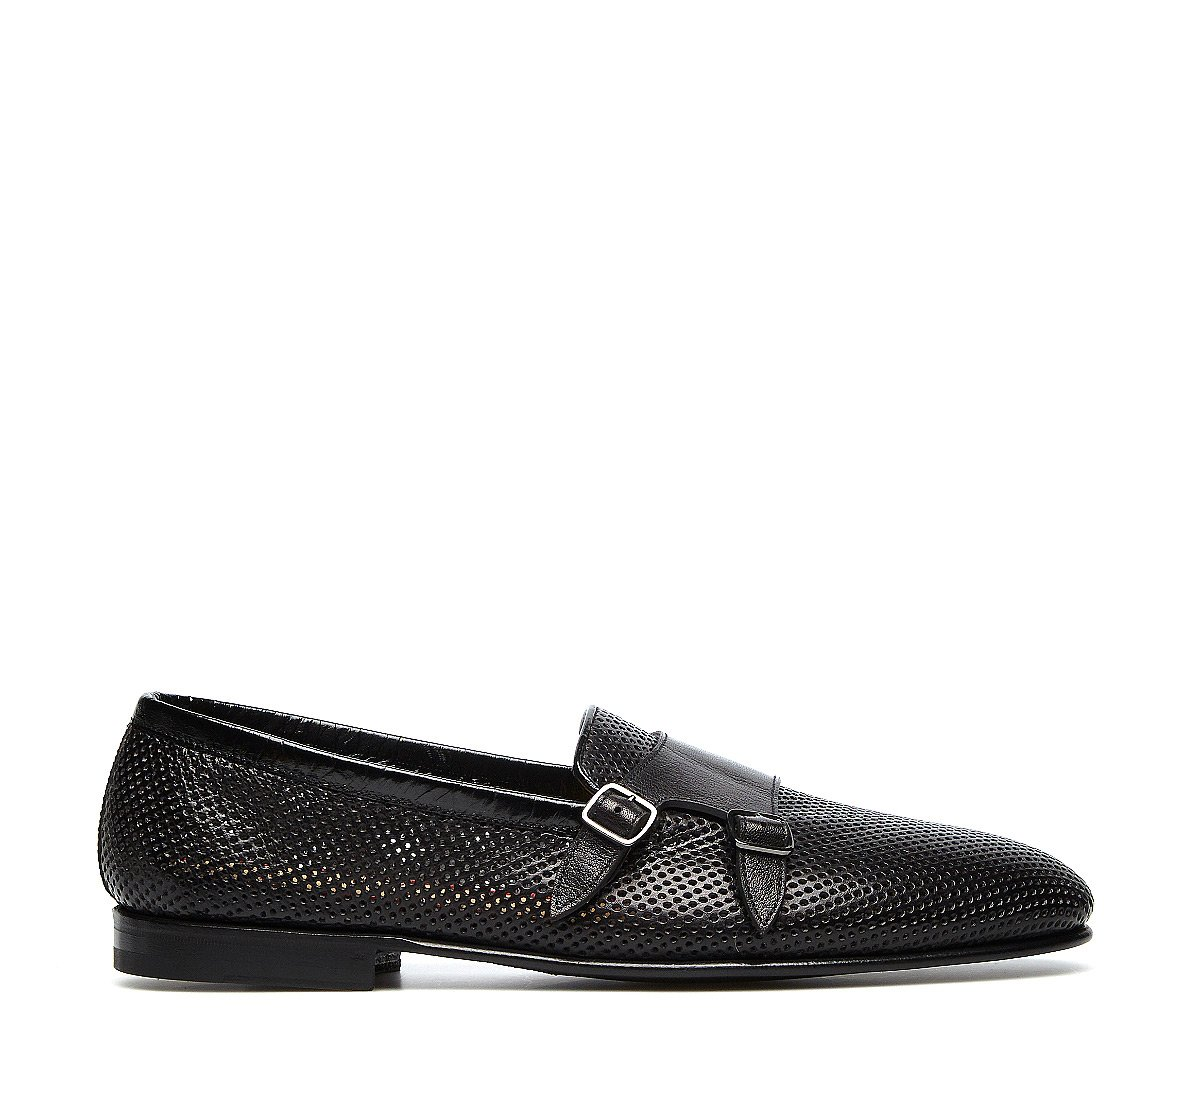 Double-buckle moccasins in exquisite calfskin, constructed using the Goodyear process